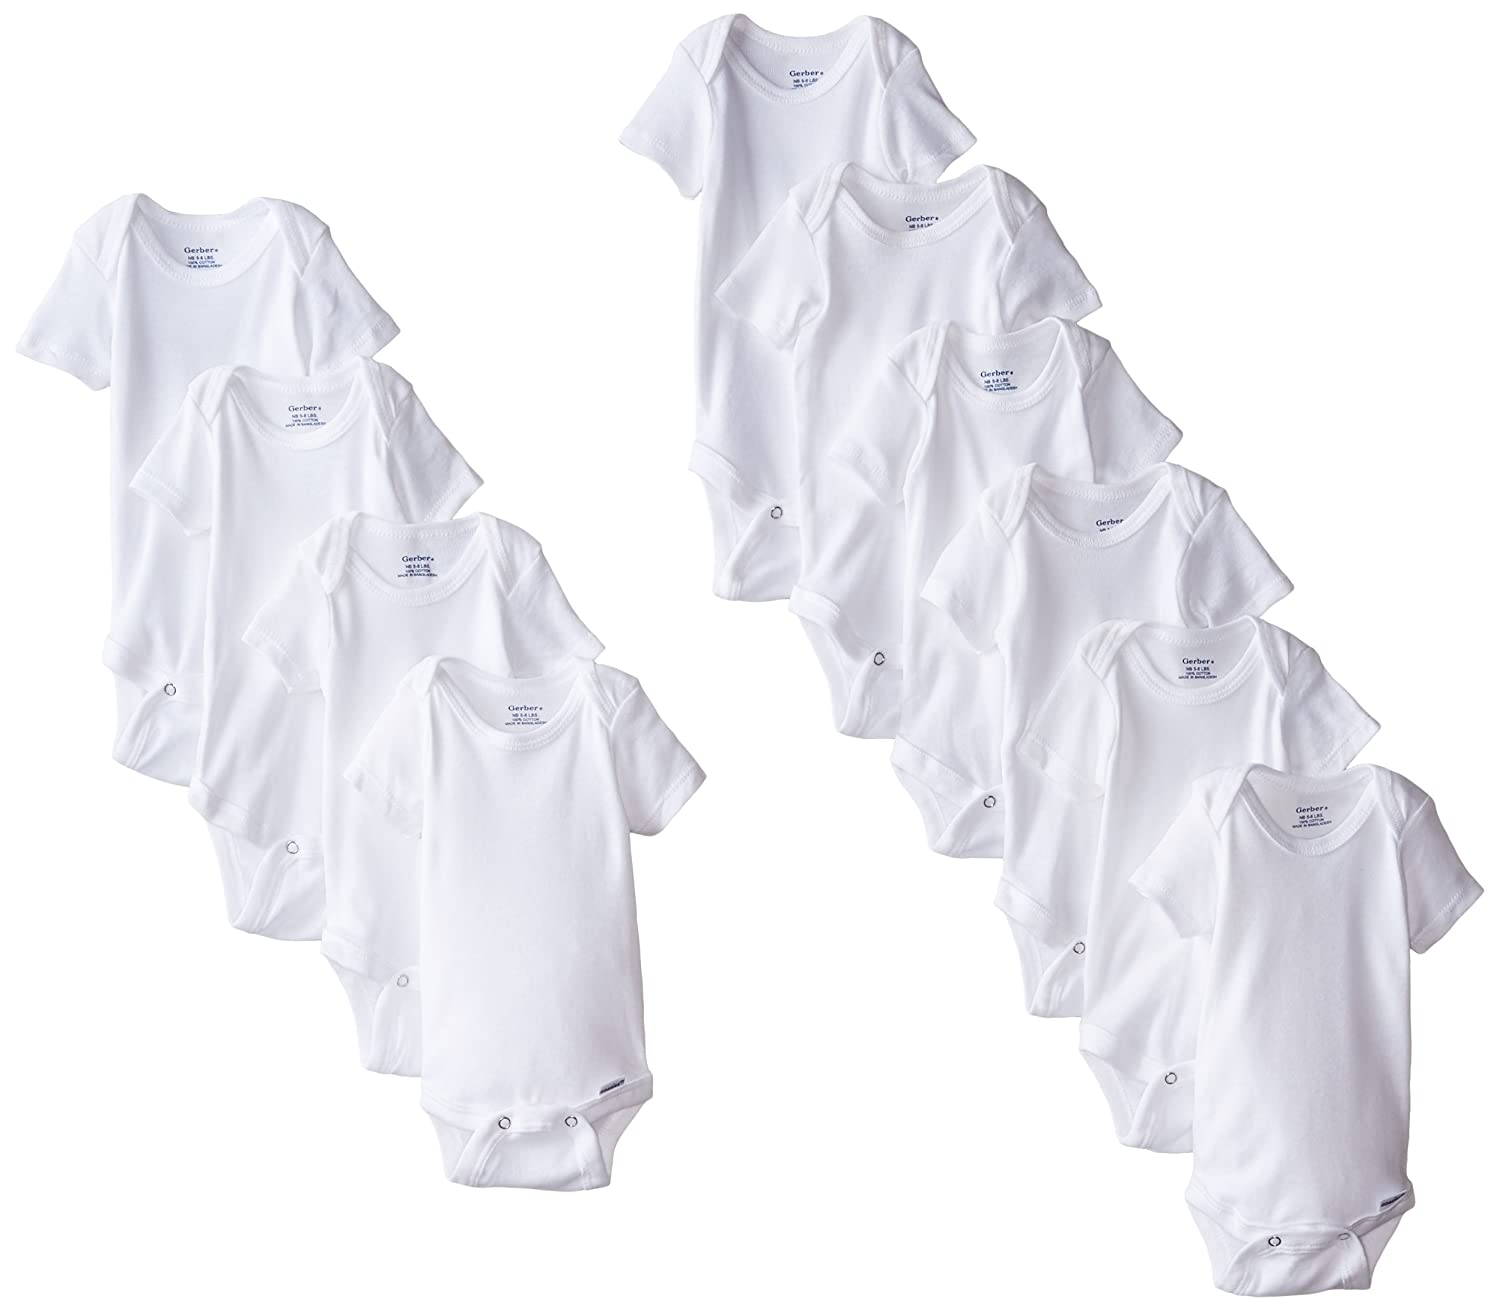 Gerber Unisex Baby 10 Piece Onesies Bundle Gerber Children' s Apparel 85366R16A100